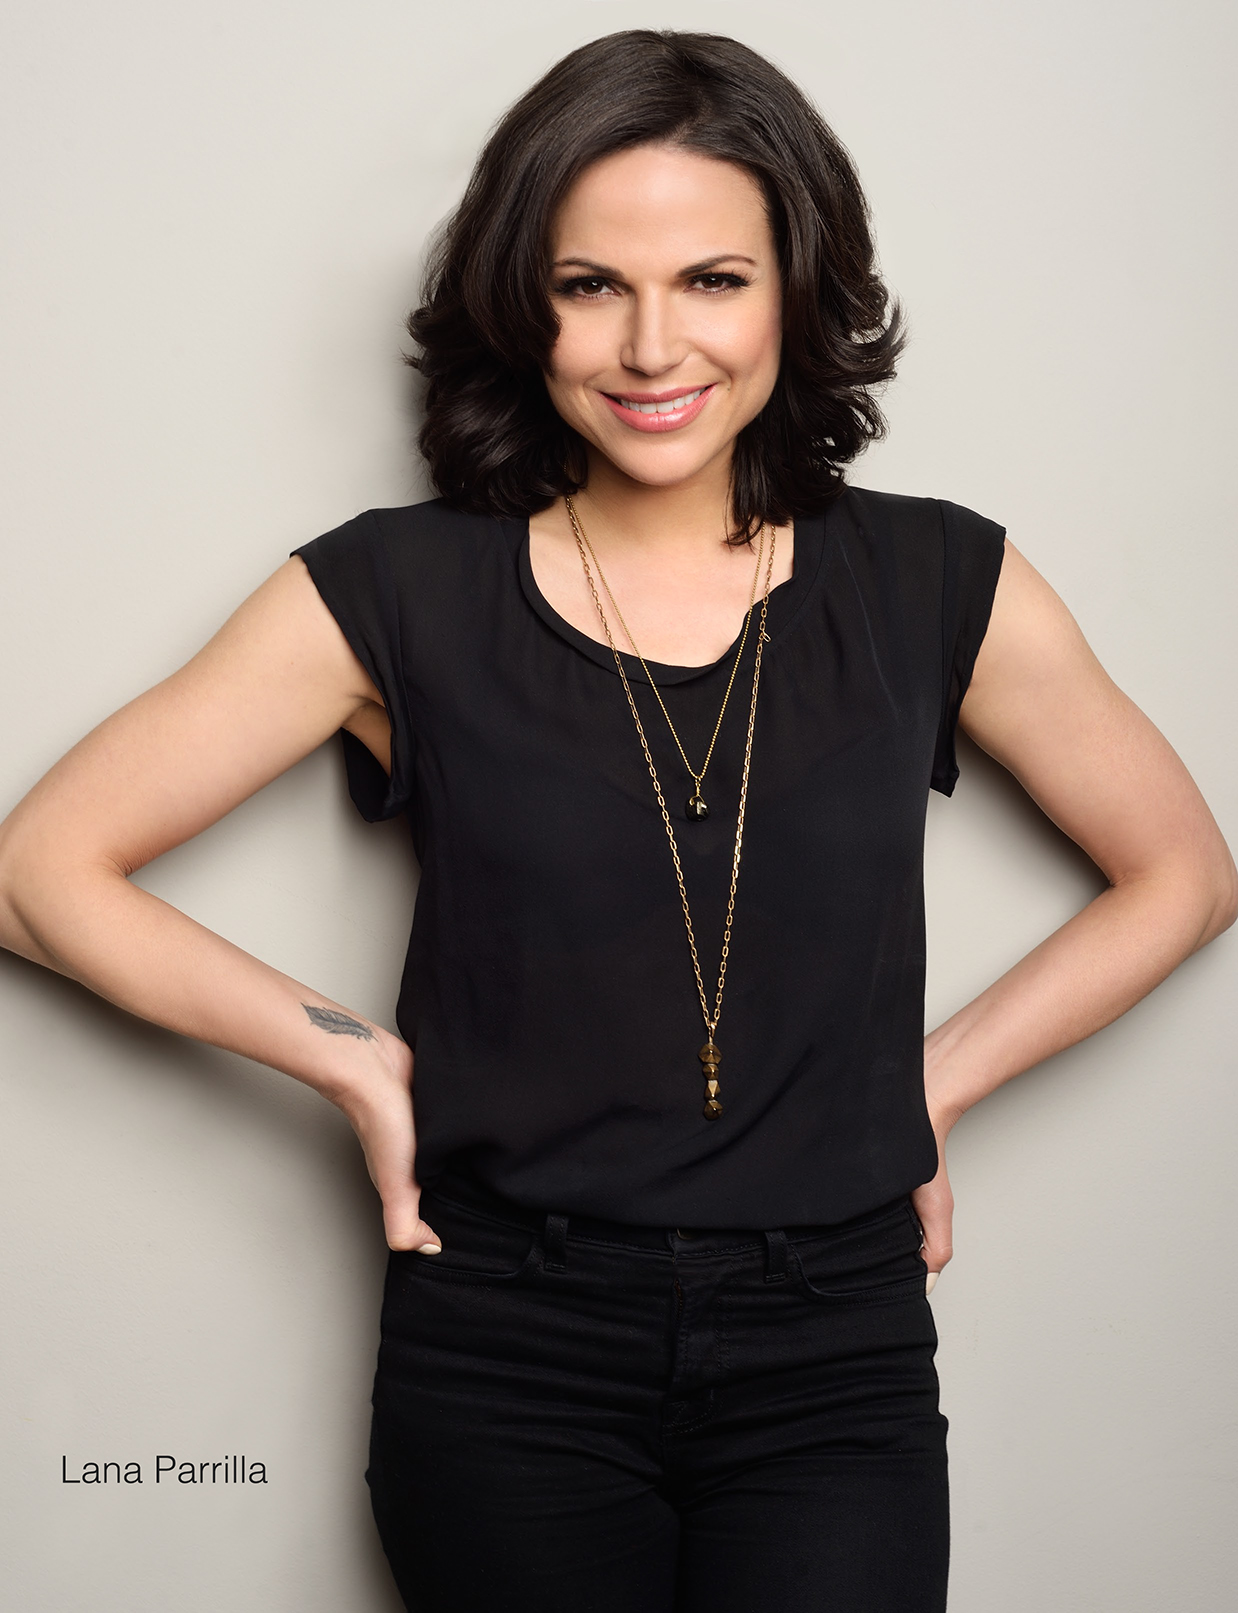 Lana Parrilla April 2014.jpg